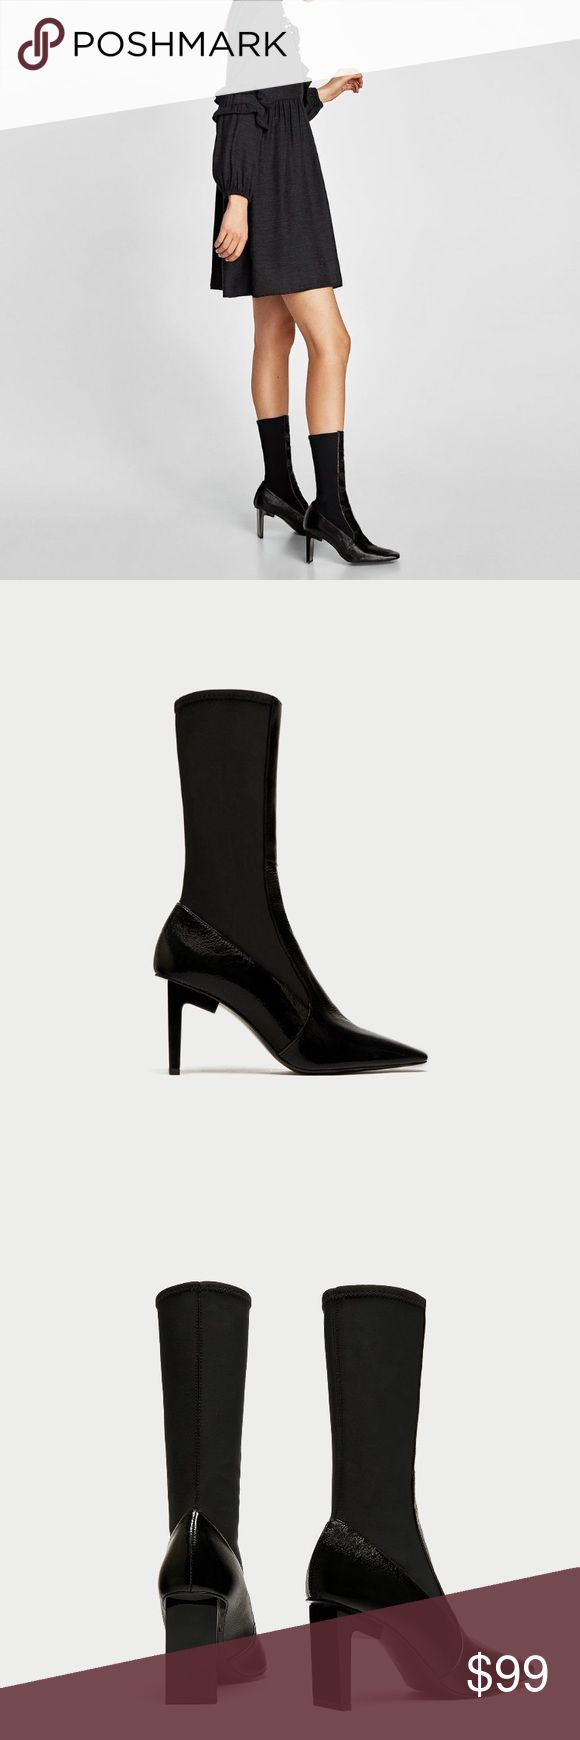 Zara ankle boots Zara leather ankle boots in size Euro 42 which is a U.S size 11 . ❌NO TRADE ❌ currently sold out everywhere . These boots look amazing with dresses , jeans , shorts and more ! It's LEATHER!! Worn once for 2 hours (indoors) Zara Shoes